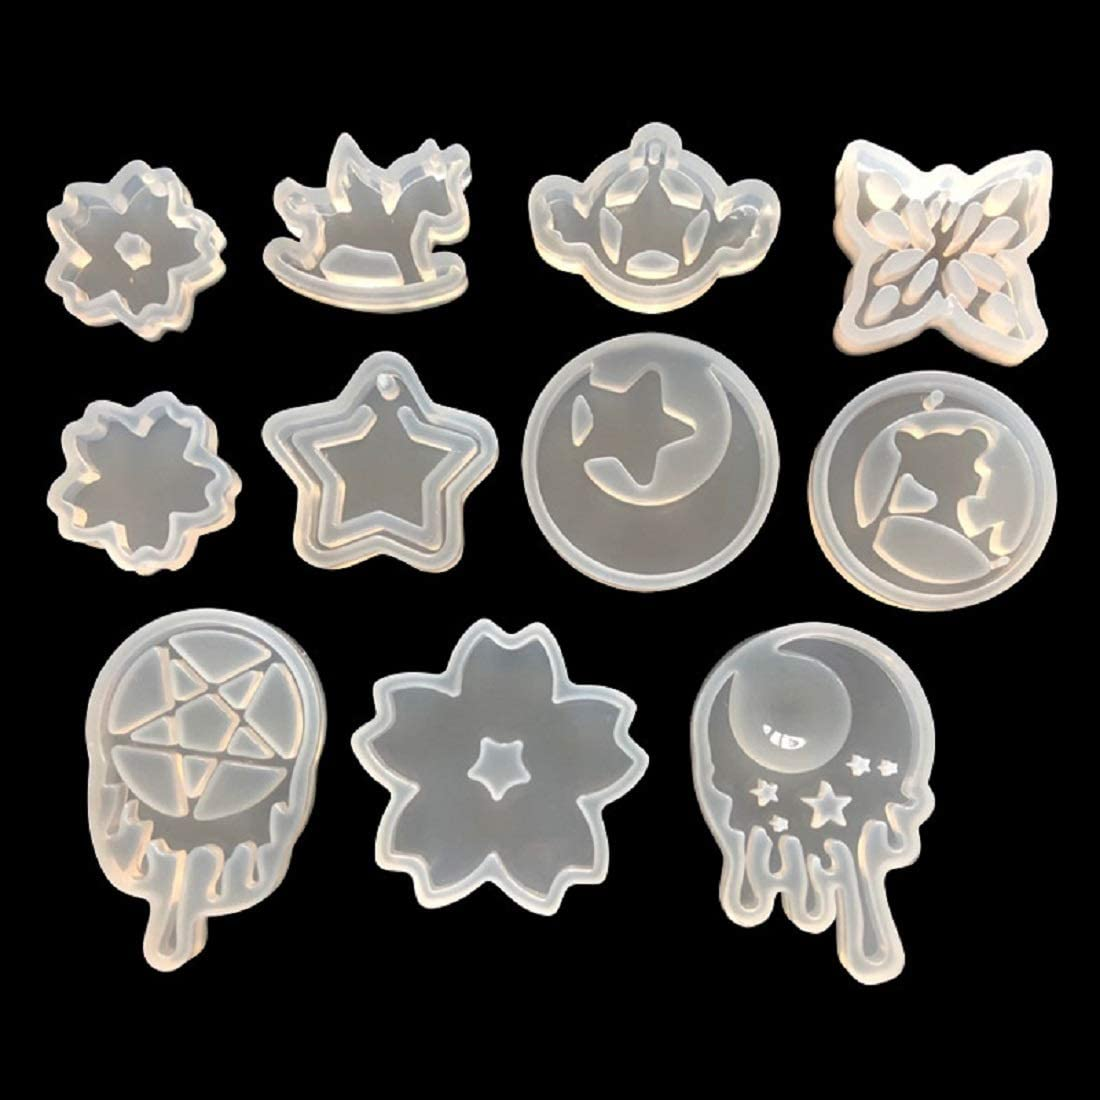 Fondant Mold 731 Jewelry Mold Resin /& Clay Mold Silicone Corner Scroll Mold